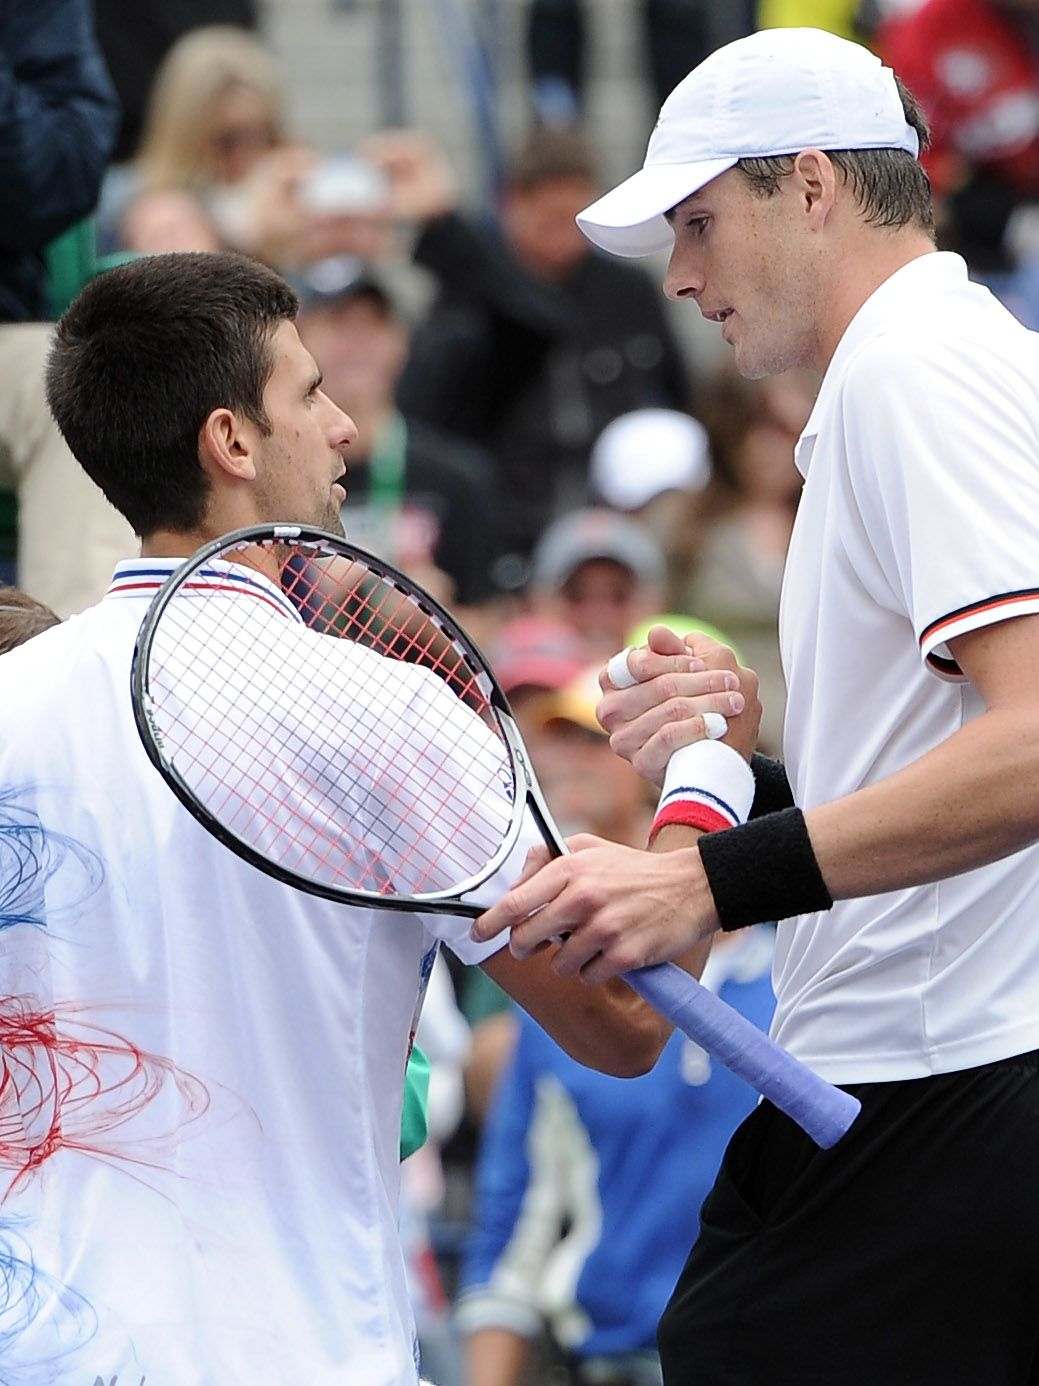 """Isner made his first grand slam quarterfinal at the U.S. Open in 2011 and relishes the big stage: """"I think that's one of the main reasons why I beat Federer, I beat Djokovic and I almost beat Rafa at the French Open of all places. That's why you play this game -- to get a crack at those guys. Try to take it to them."""""""